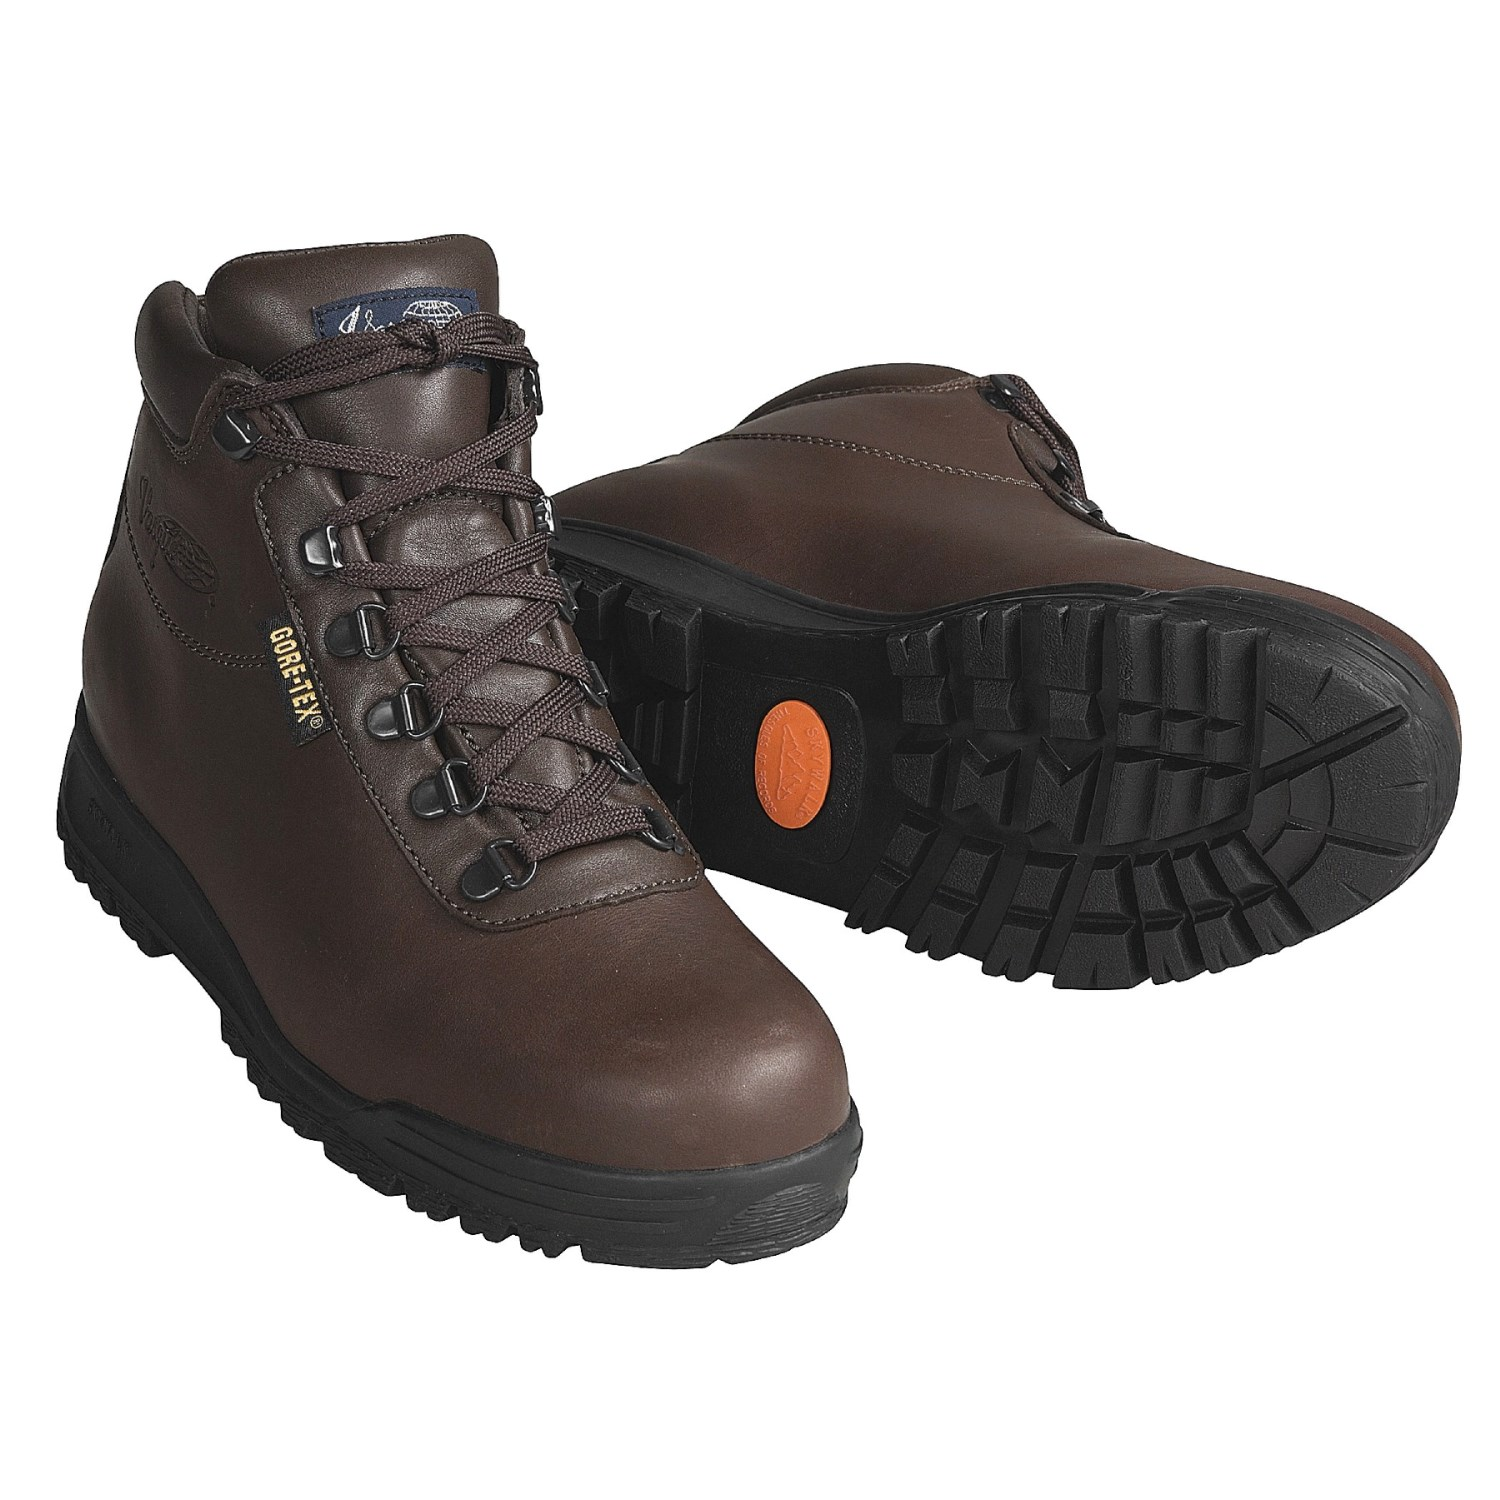 New Salewa Rosengarten Gore-Texu00ae Boots (For Women) 9385V - Save 58%